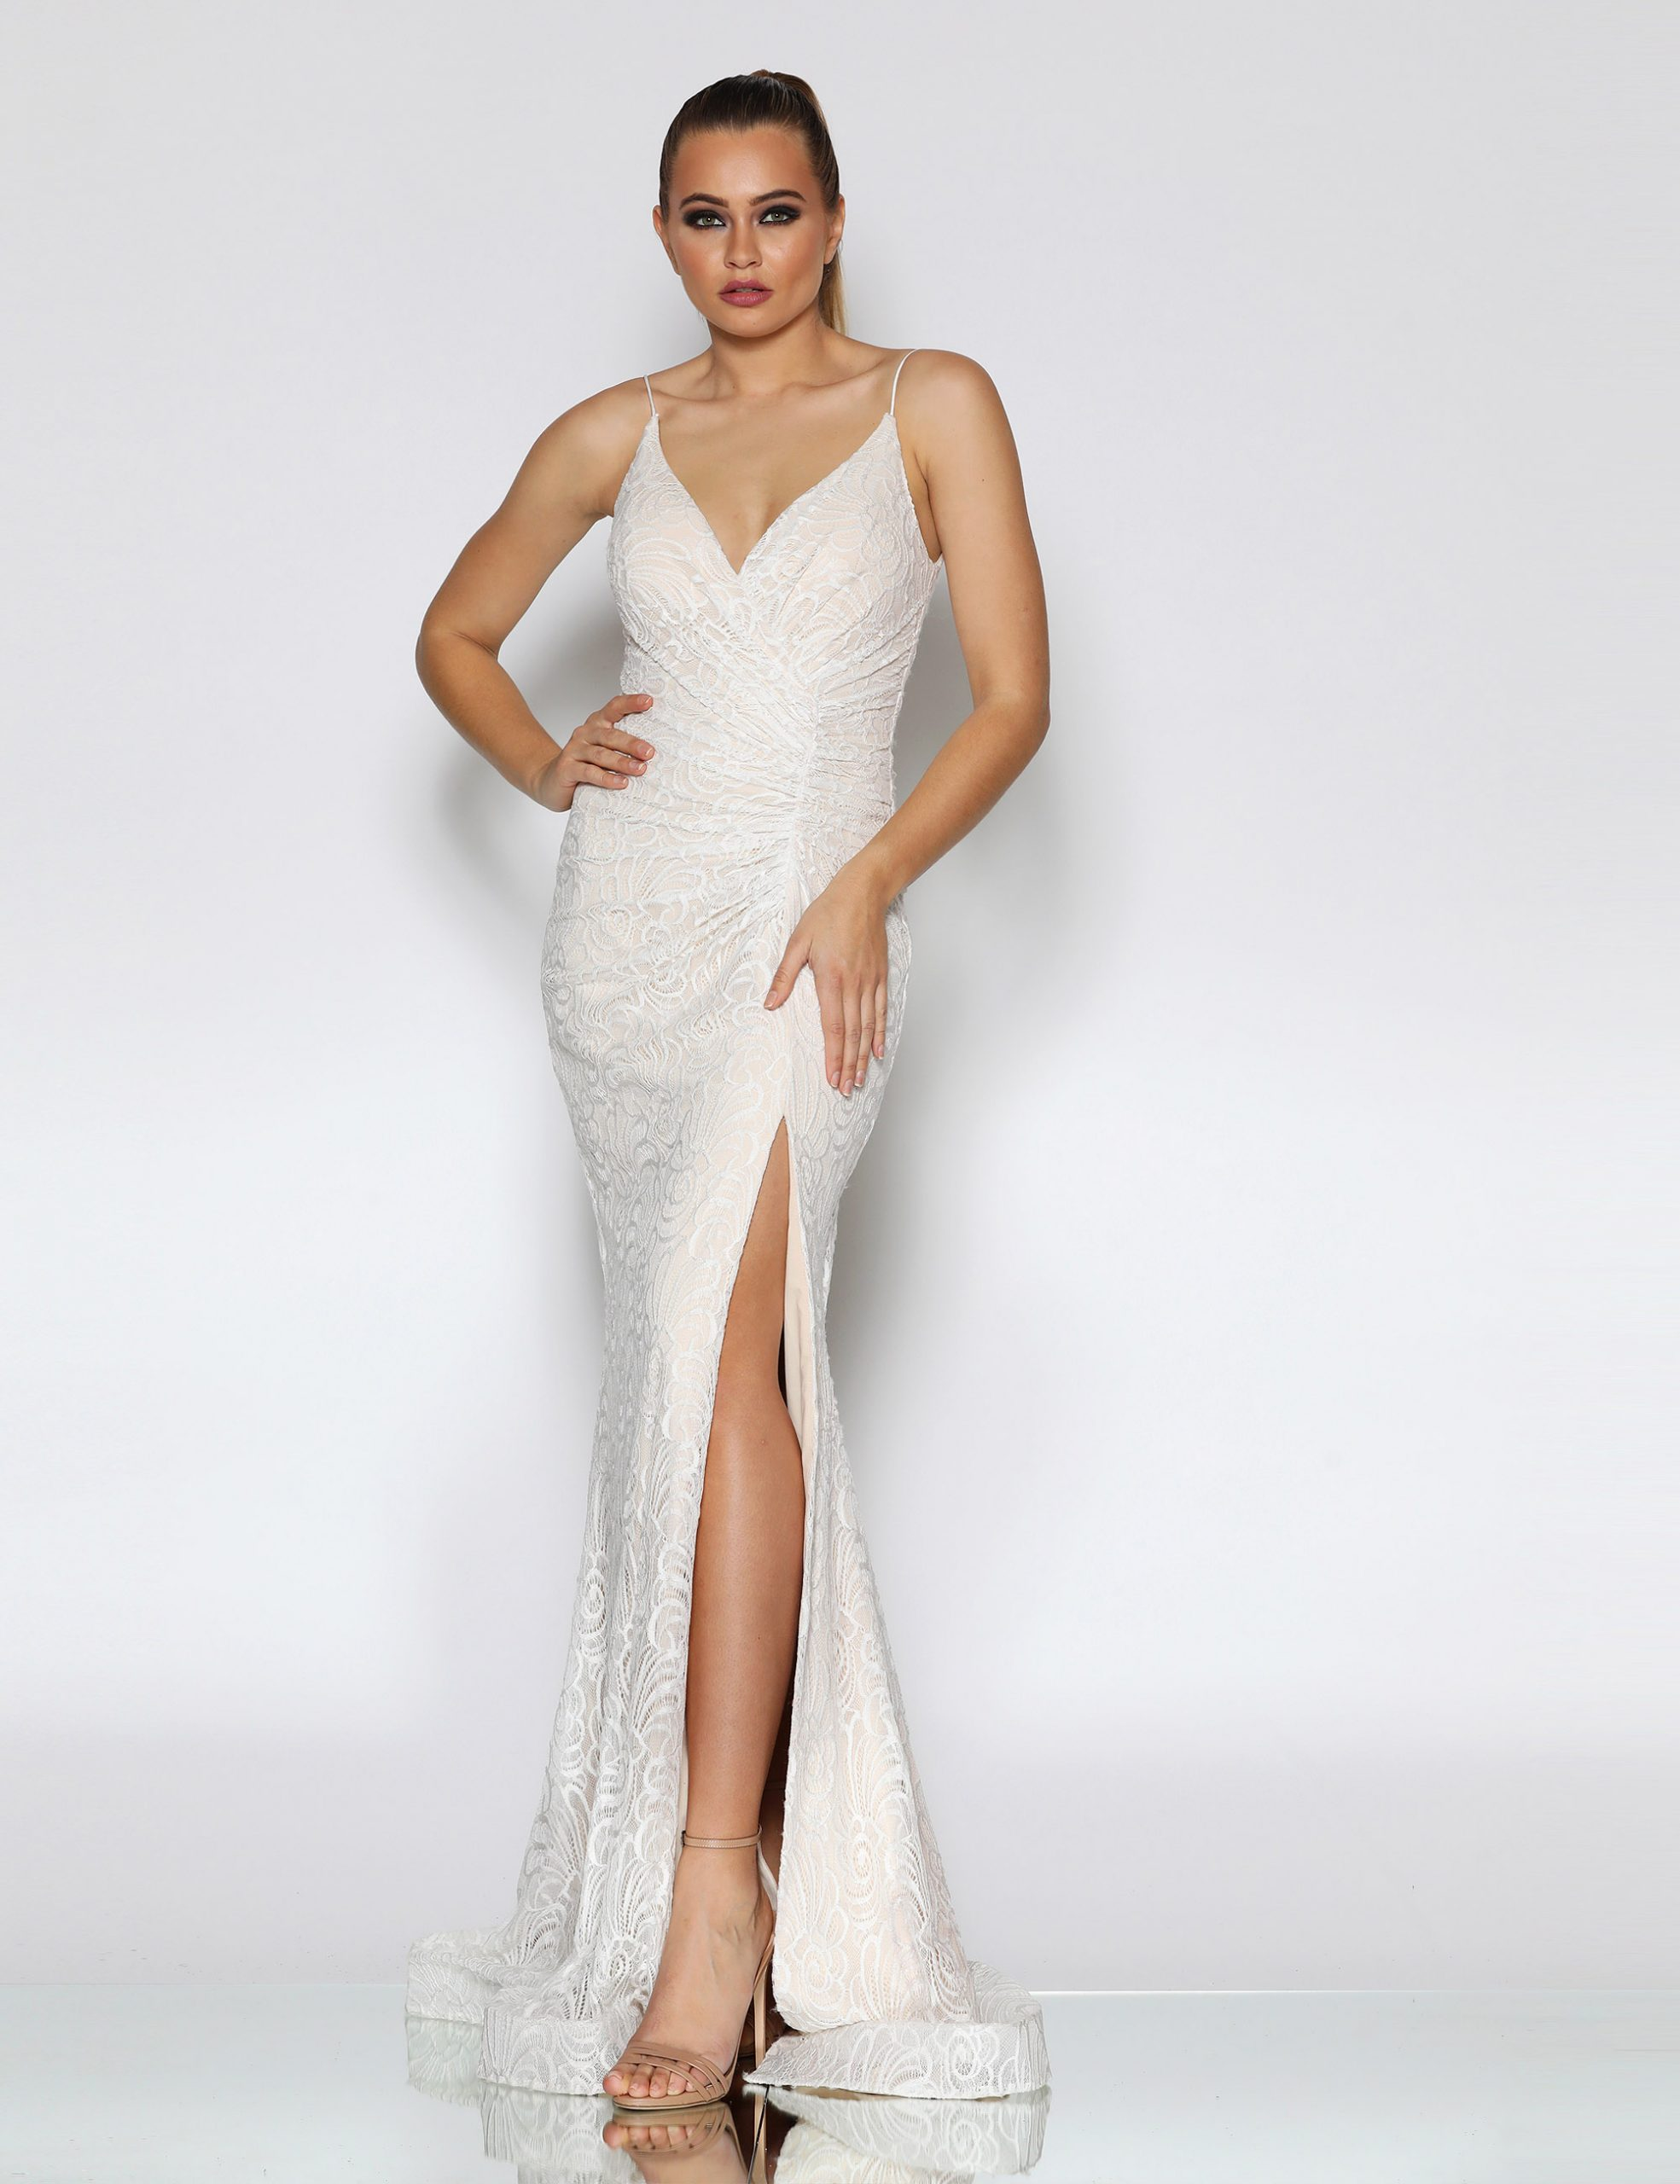 weddingdress17